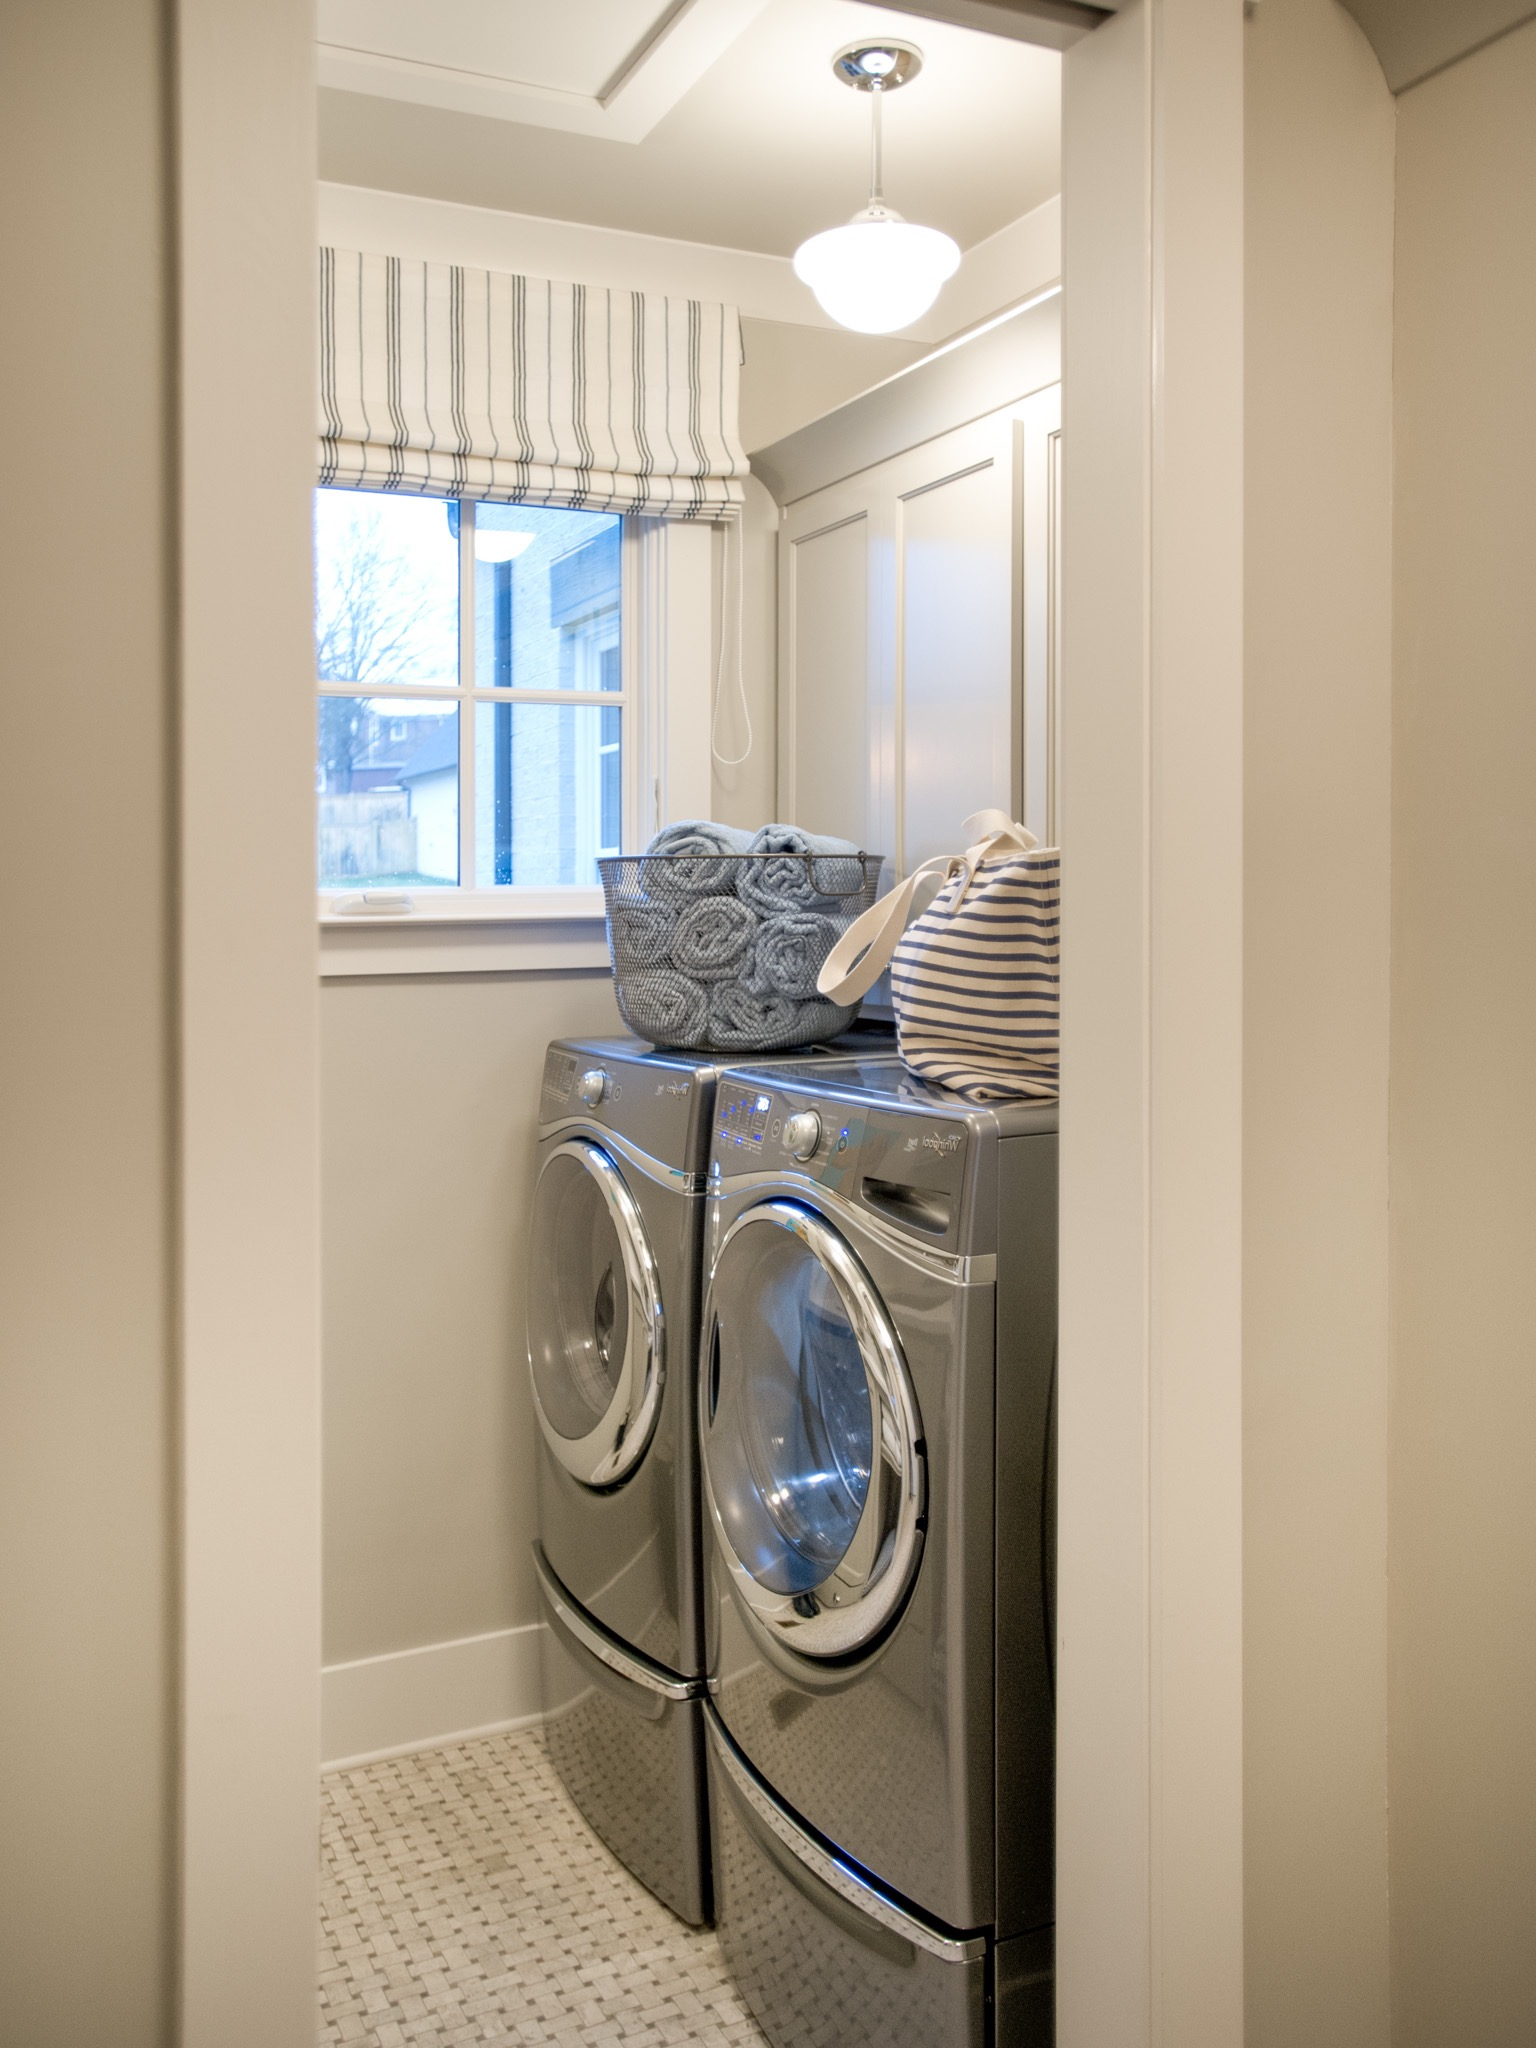 Traditional Laundry Room With Front Loading Appliances Washer And Dryer (Image 22 of 26)